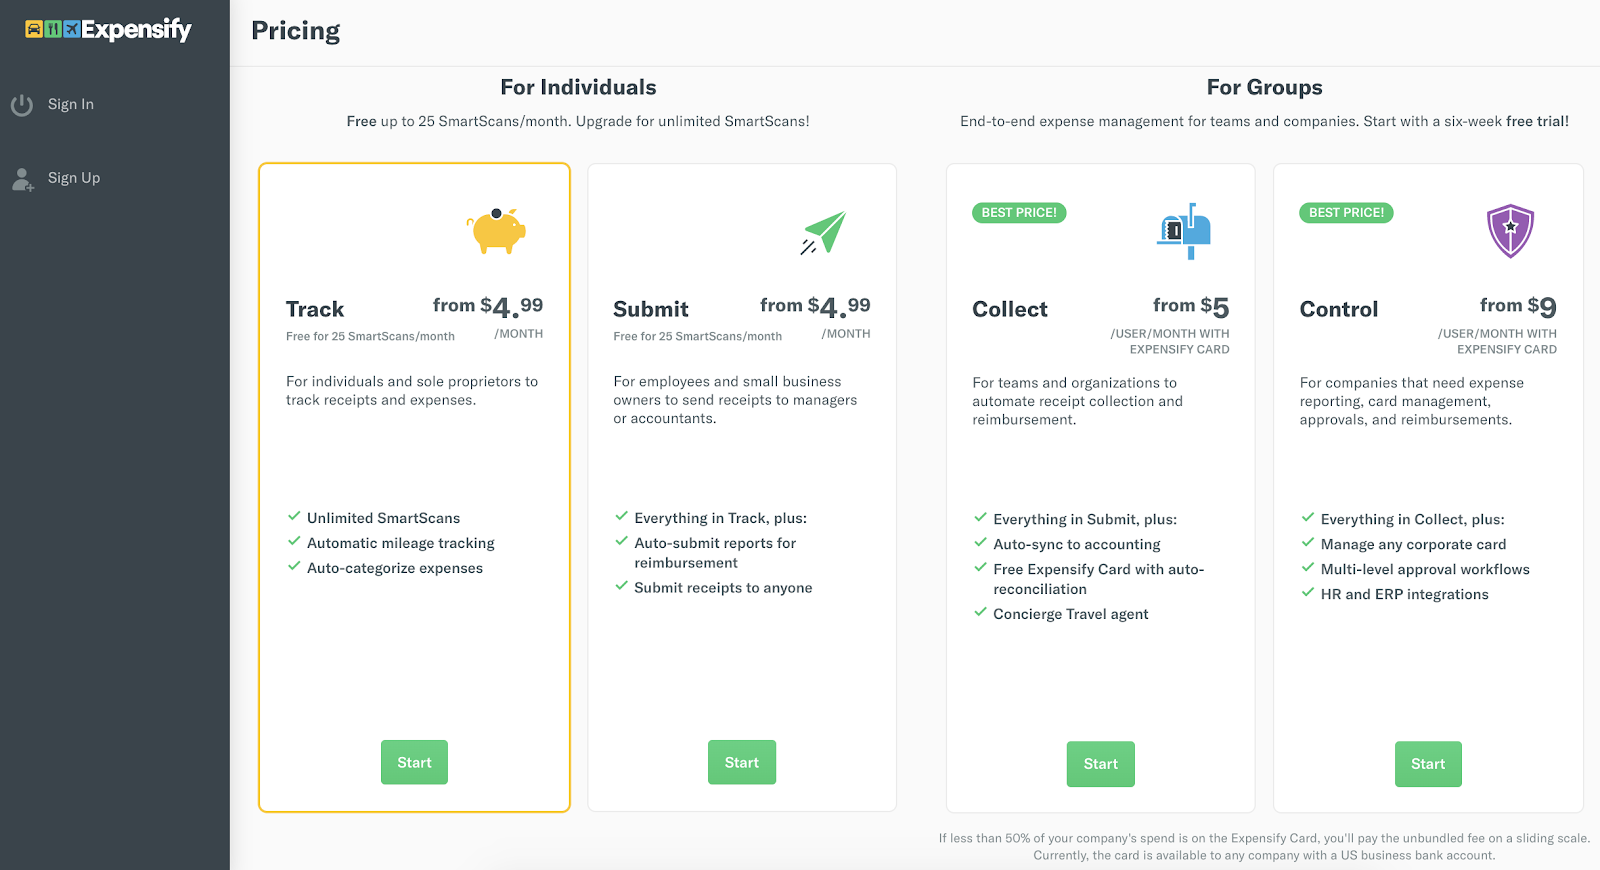 Expensify pricing page.